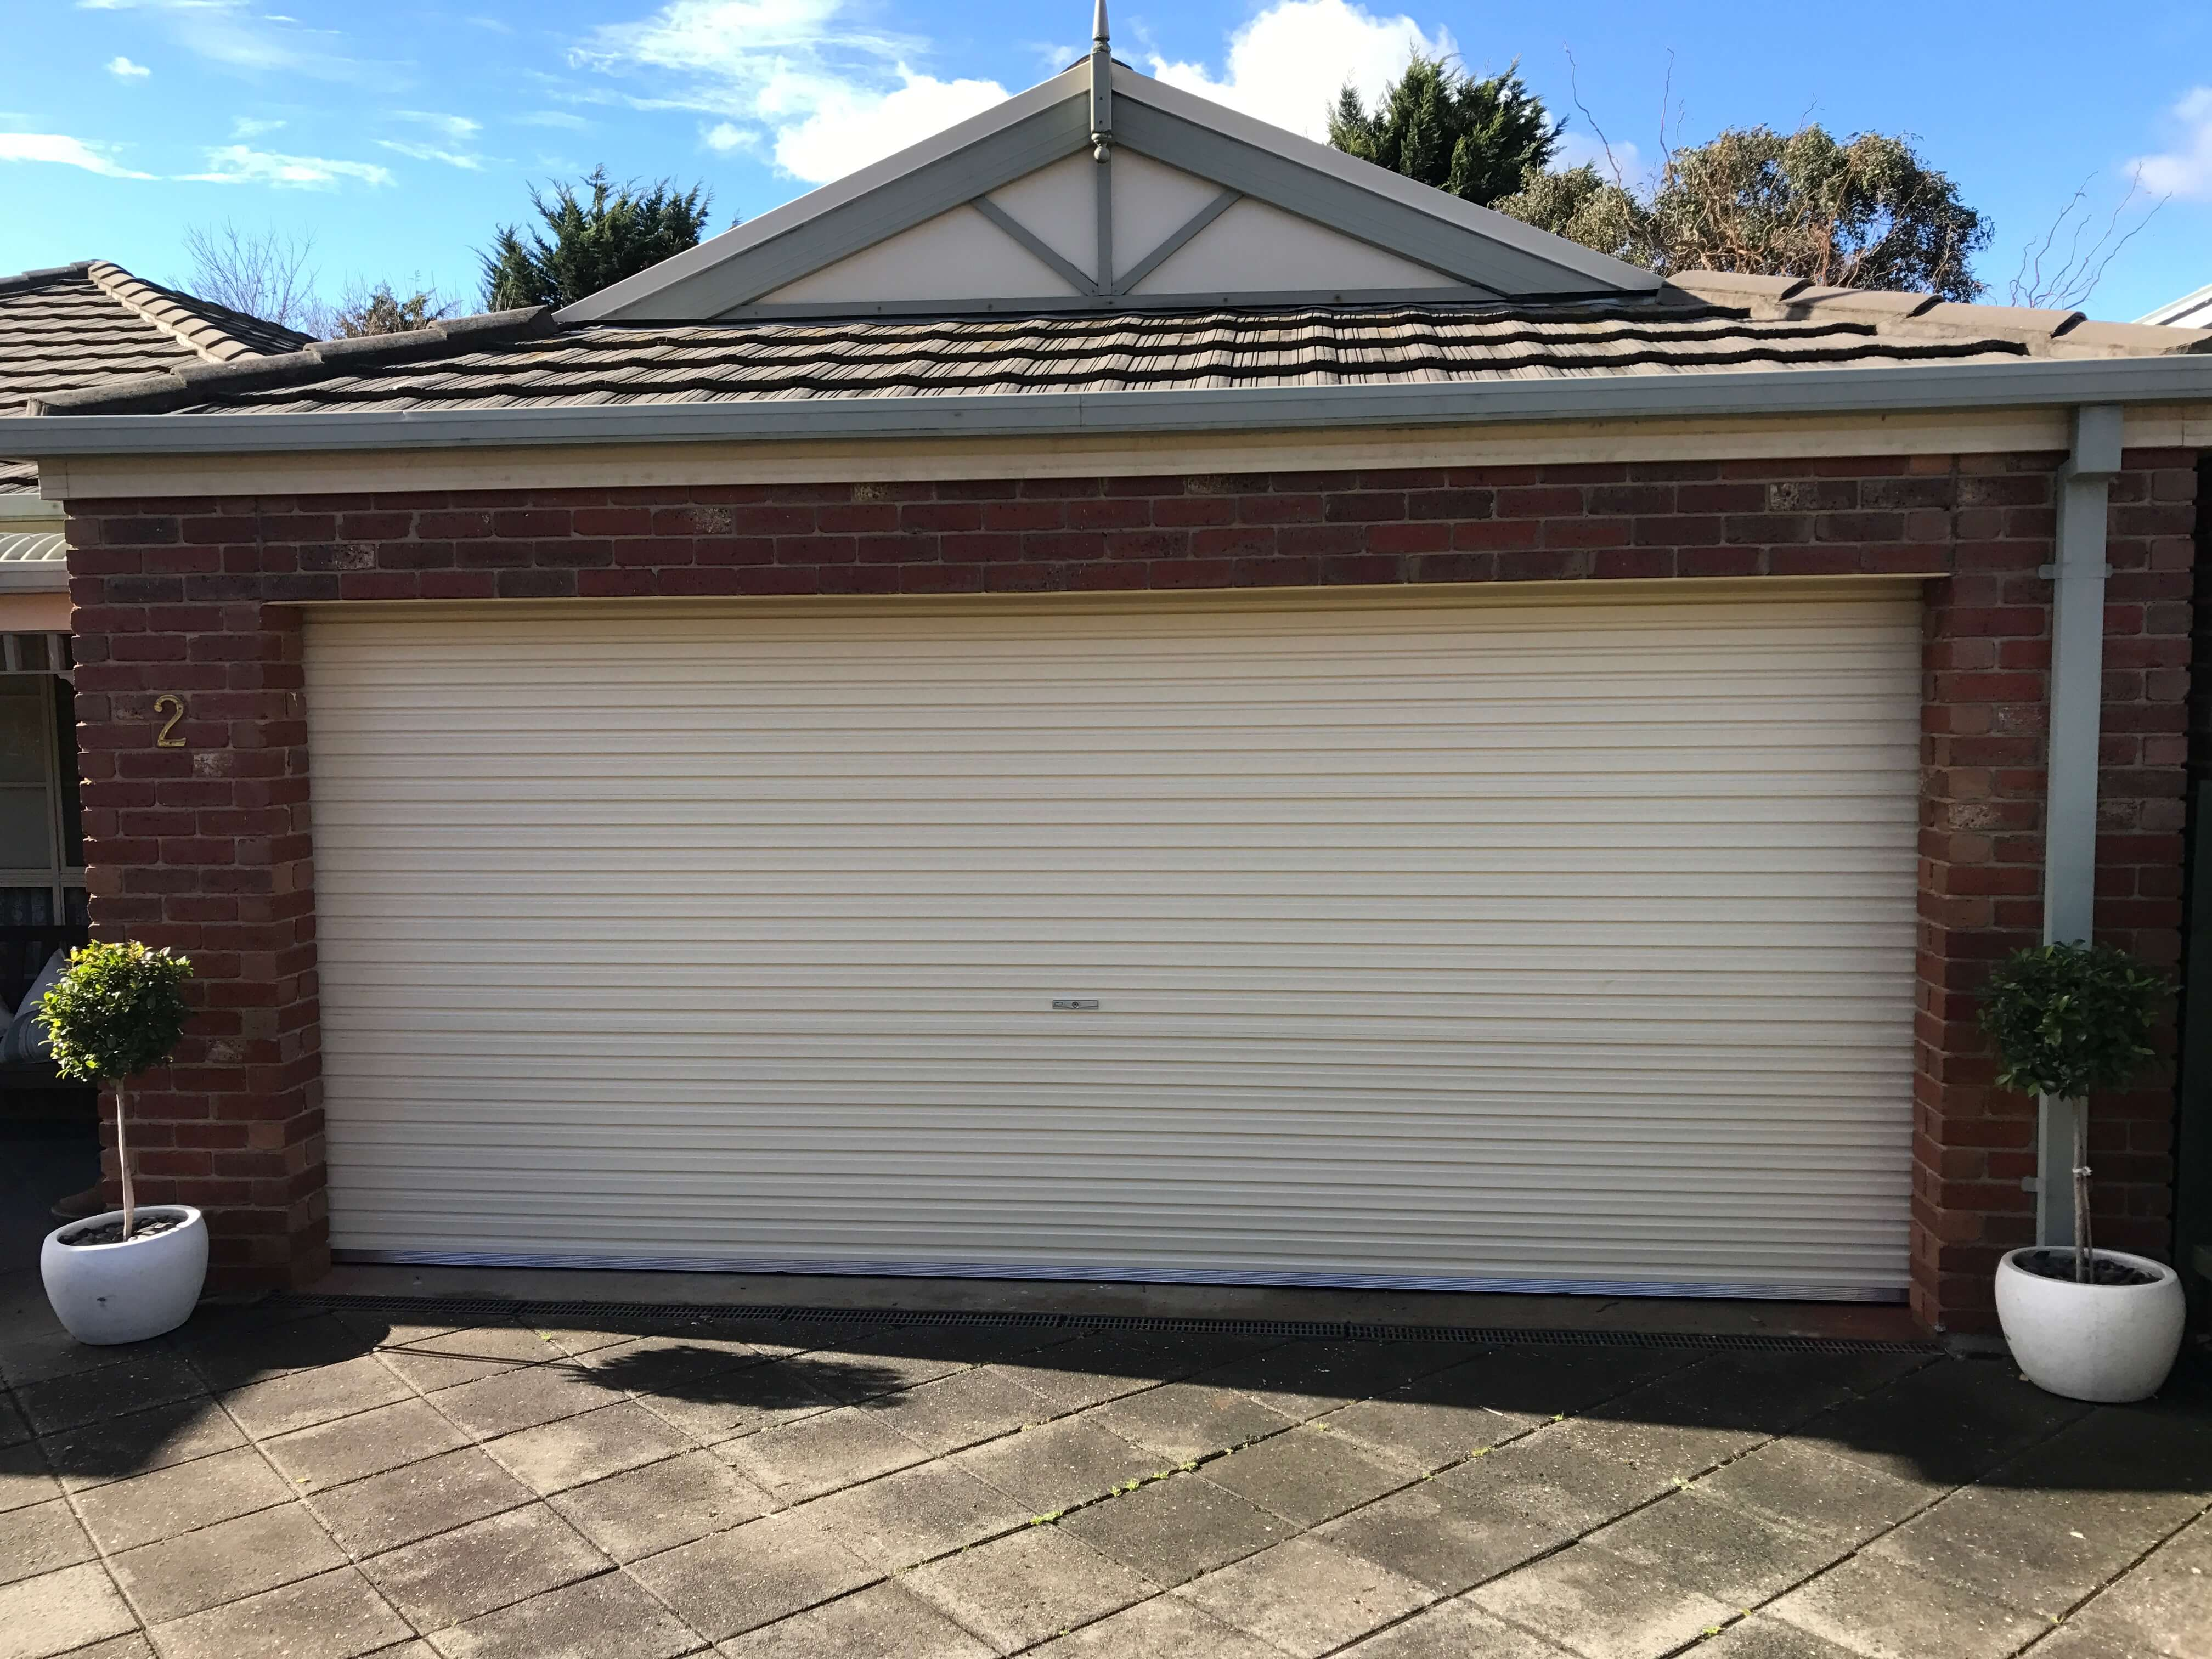 Renowned For Their Durability And Versatility The Team At Nuevo Garage Doors  Proudly Stocks A Wide Range Of Electric Roller Garage Doors That Are  Perfect ...